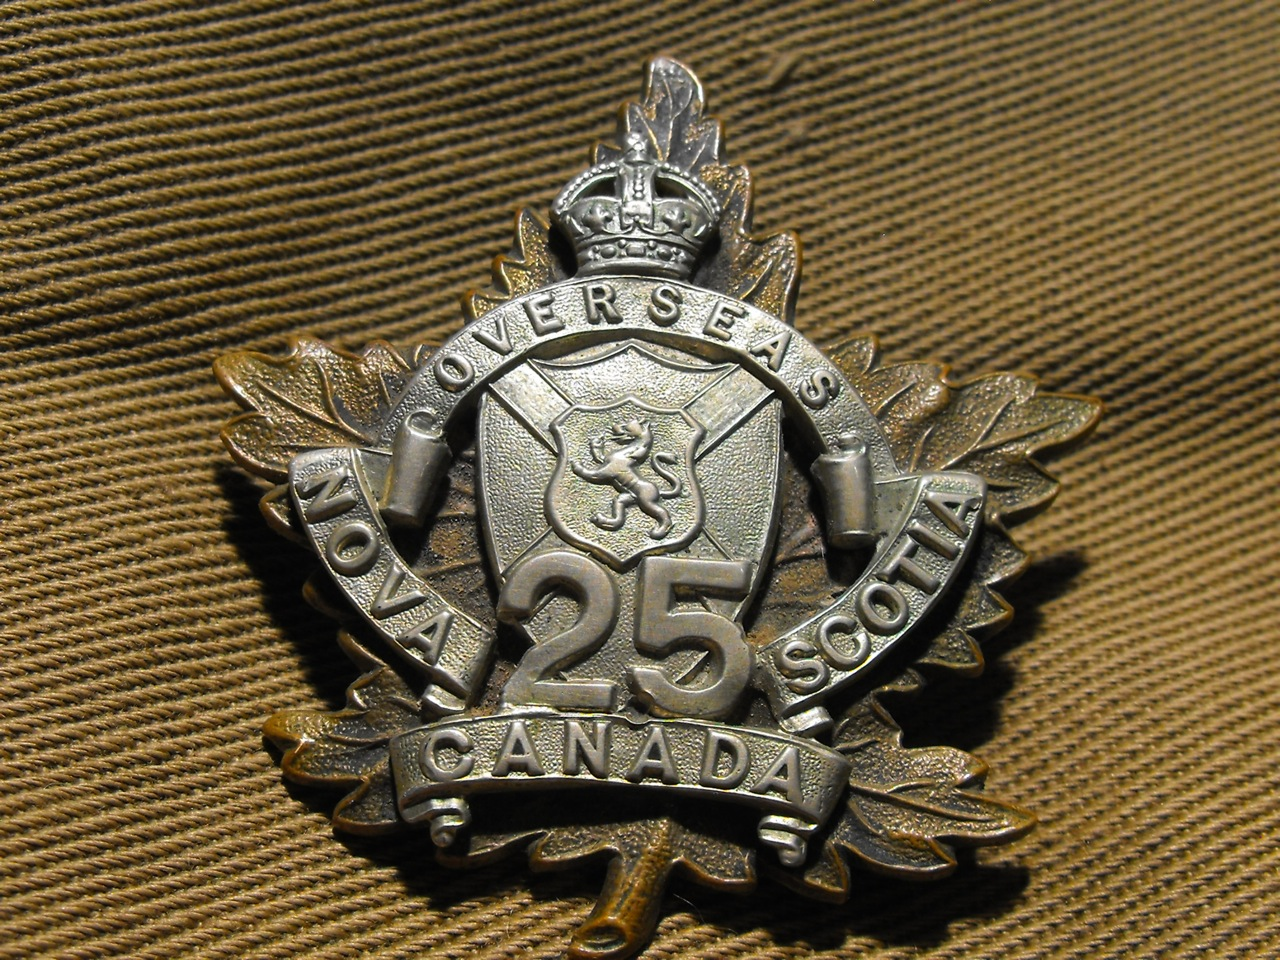 25th Bn Officers Cap Badge